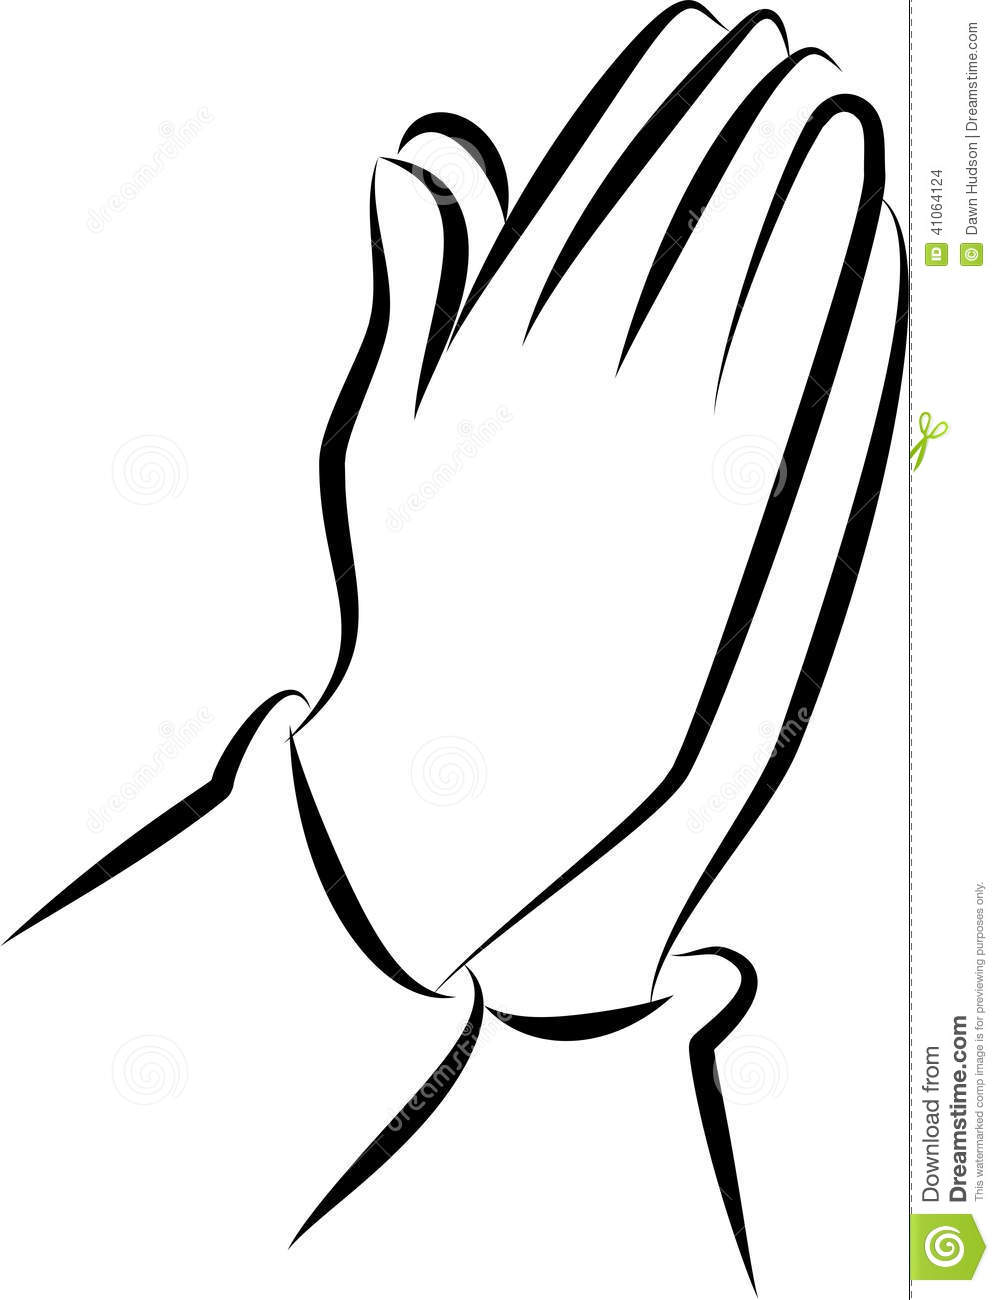 praying hands clip art stock illustration illustration of faith rh dreamstime com praying hands prayer clipart